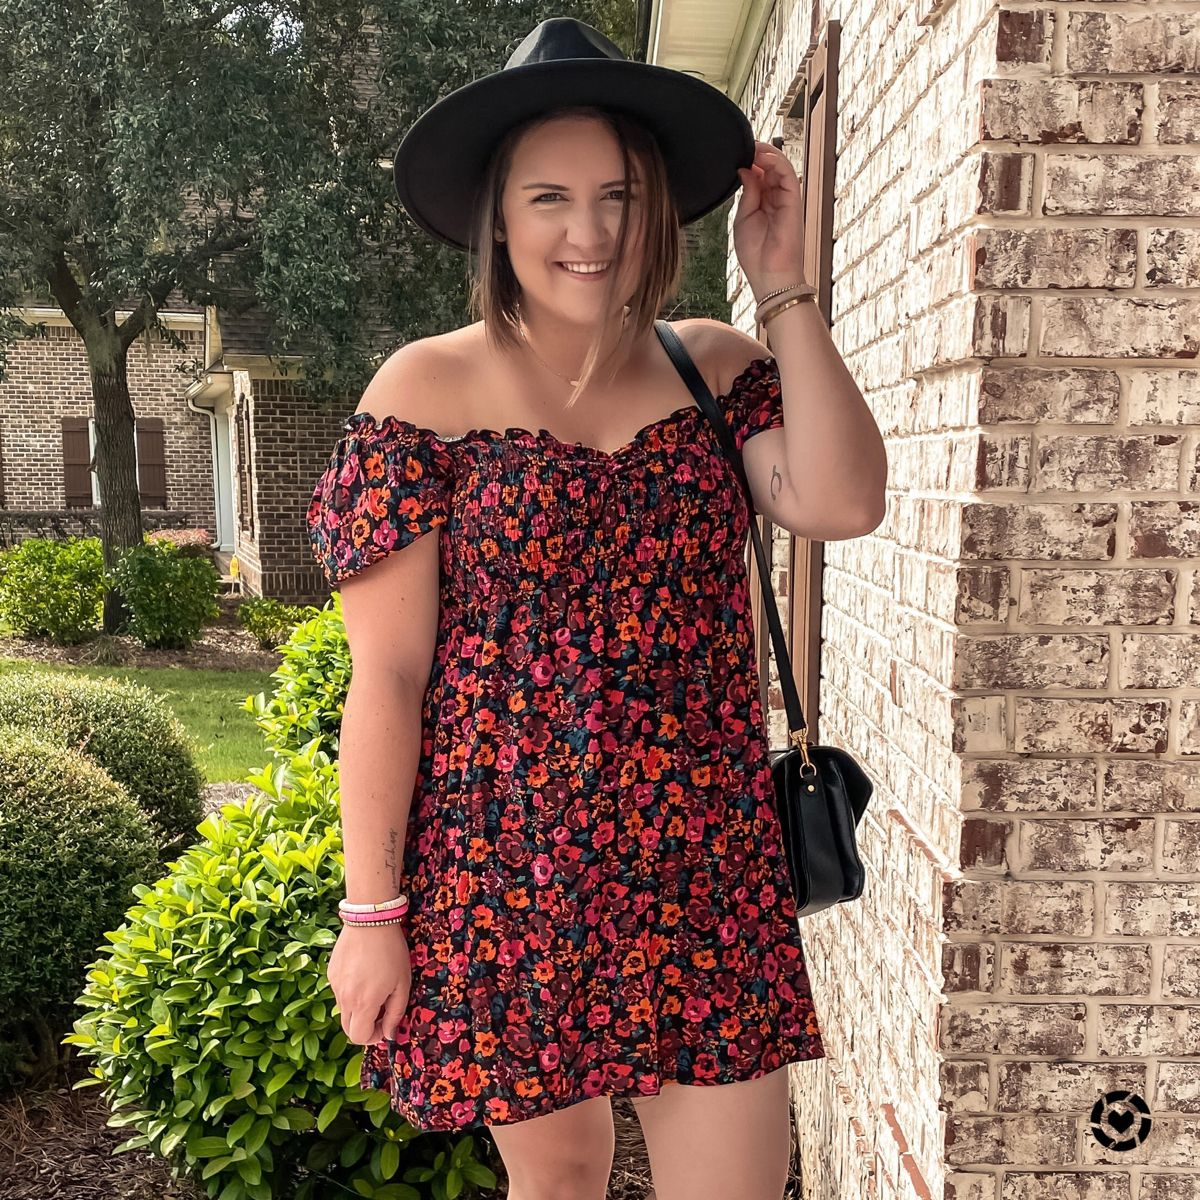 Target Style Fall Floral Dress Fall Casual Outfit Inspiration In 2020 Casual Fall Outfits Casual Outfit Inspiration Target Style Fall [ 1200 x 1200 Pixel ]